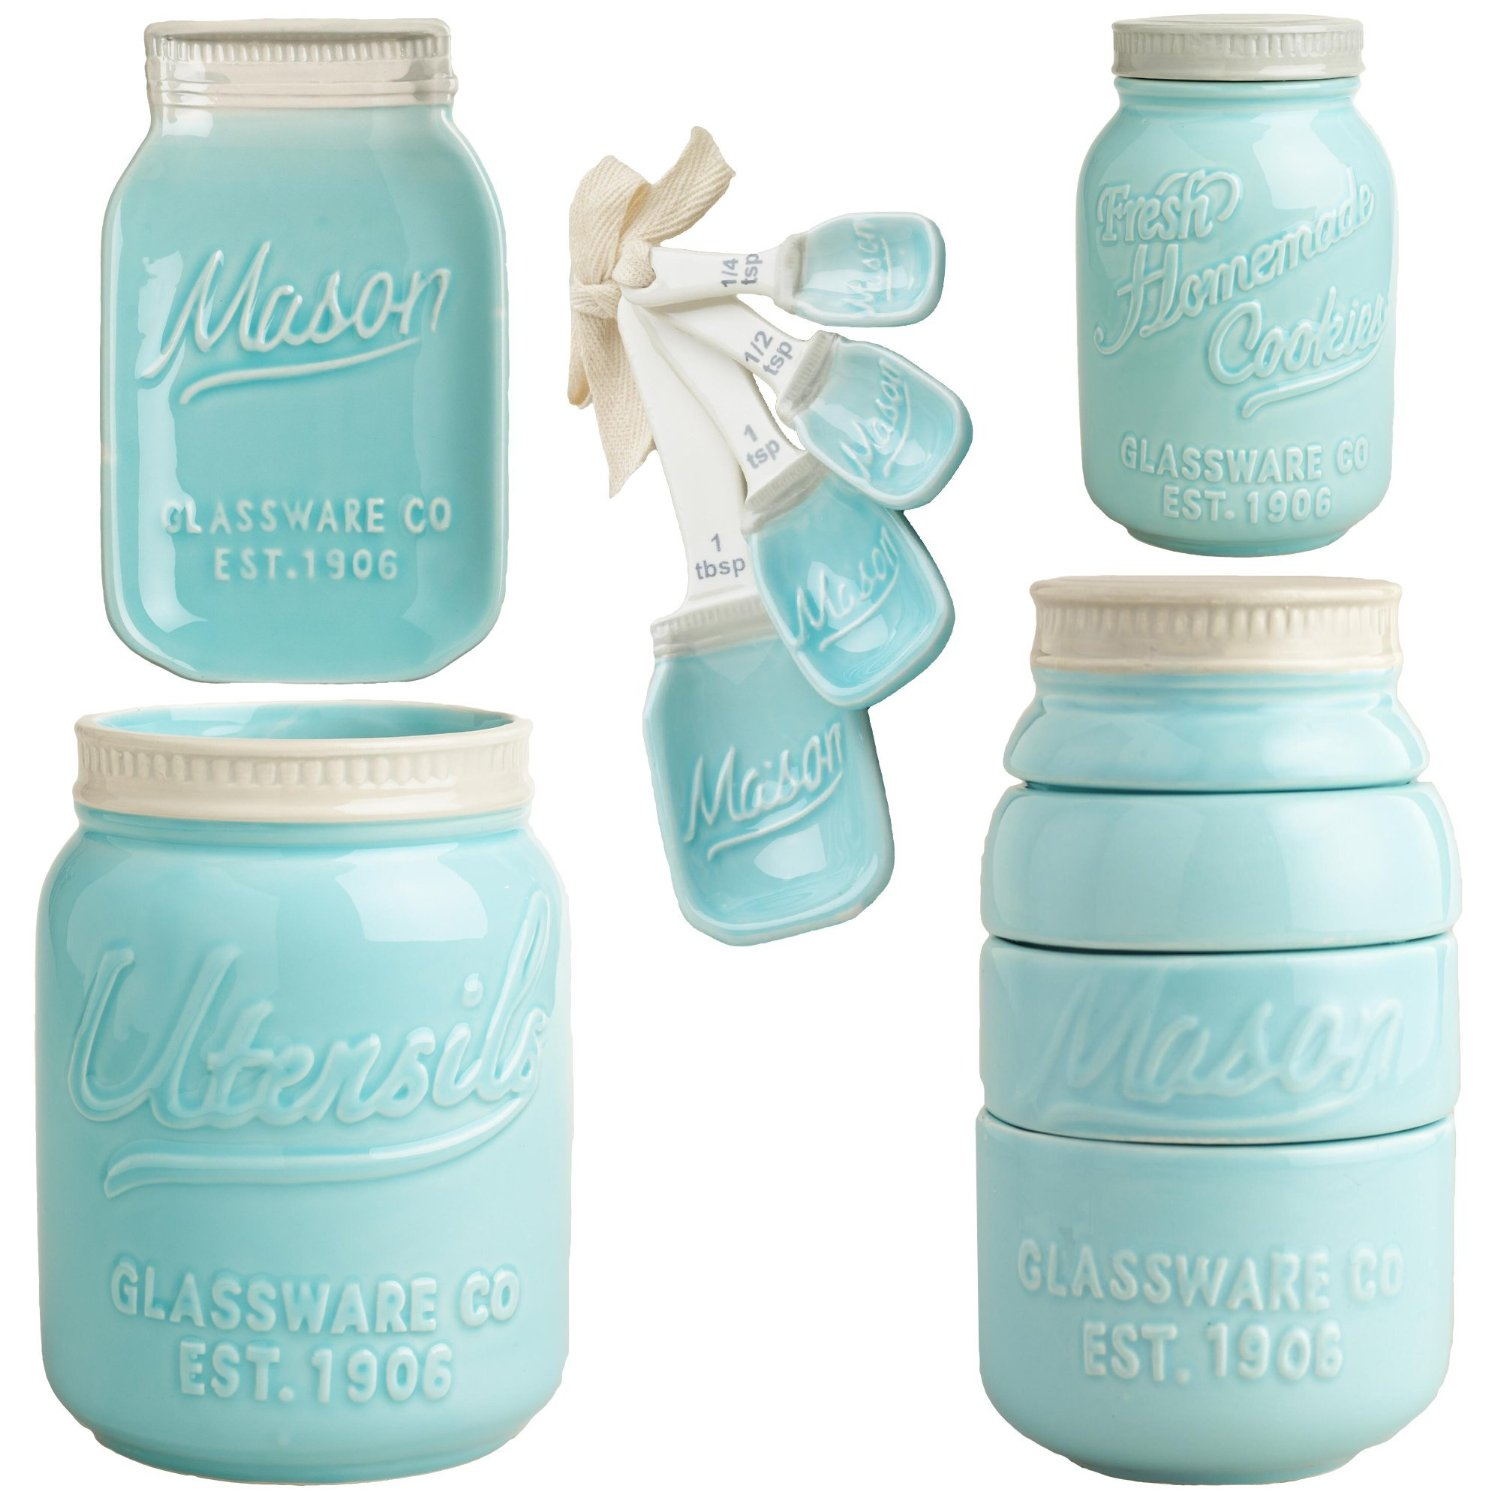 Ceramic Cookie Jar Sets Mason Jar Ceramic Kitchenware Quotcomplete Set Quot Measuring